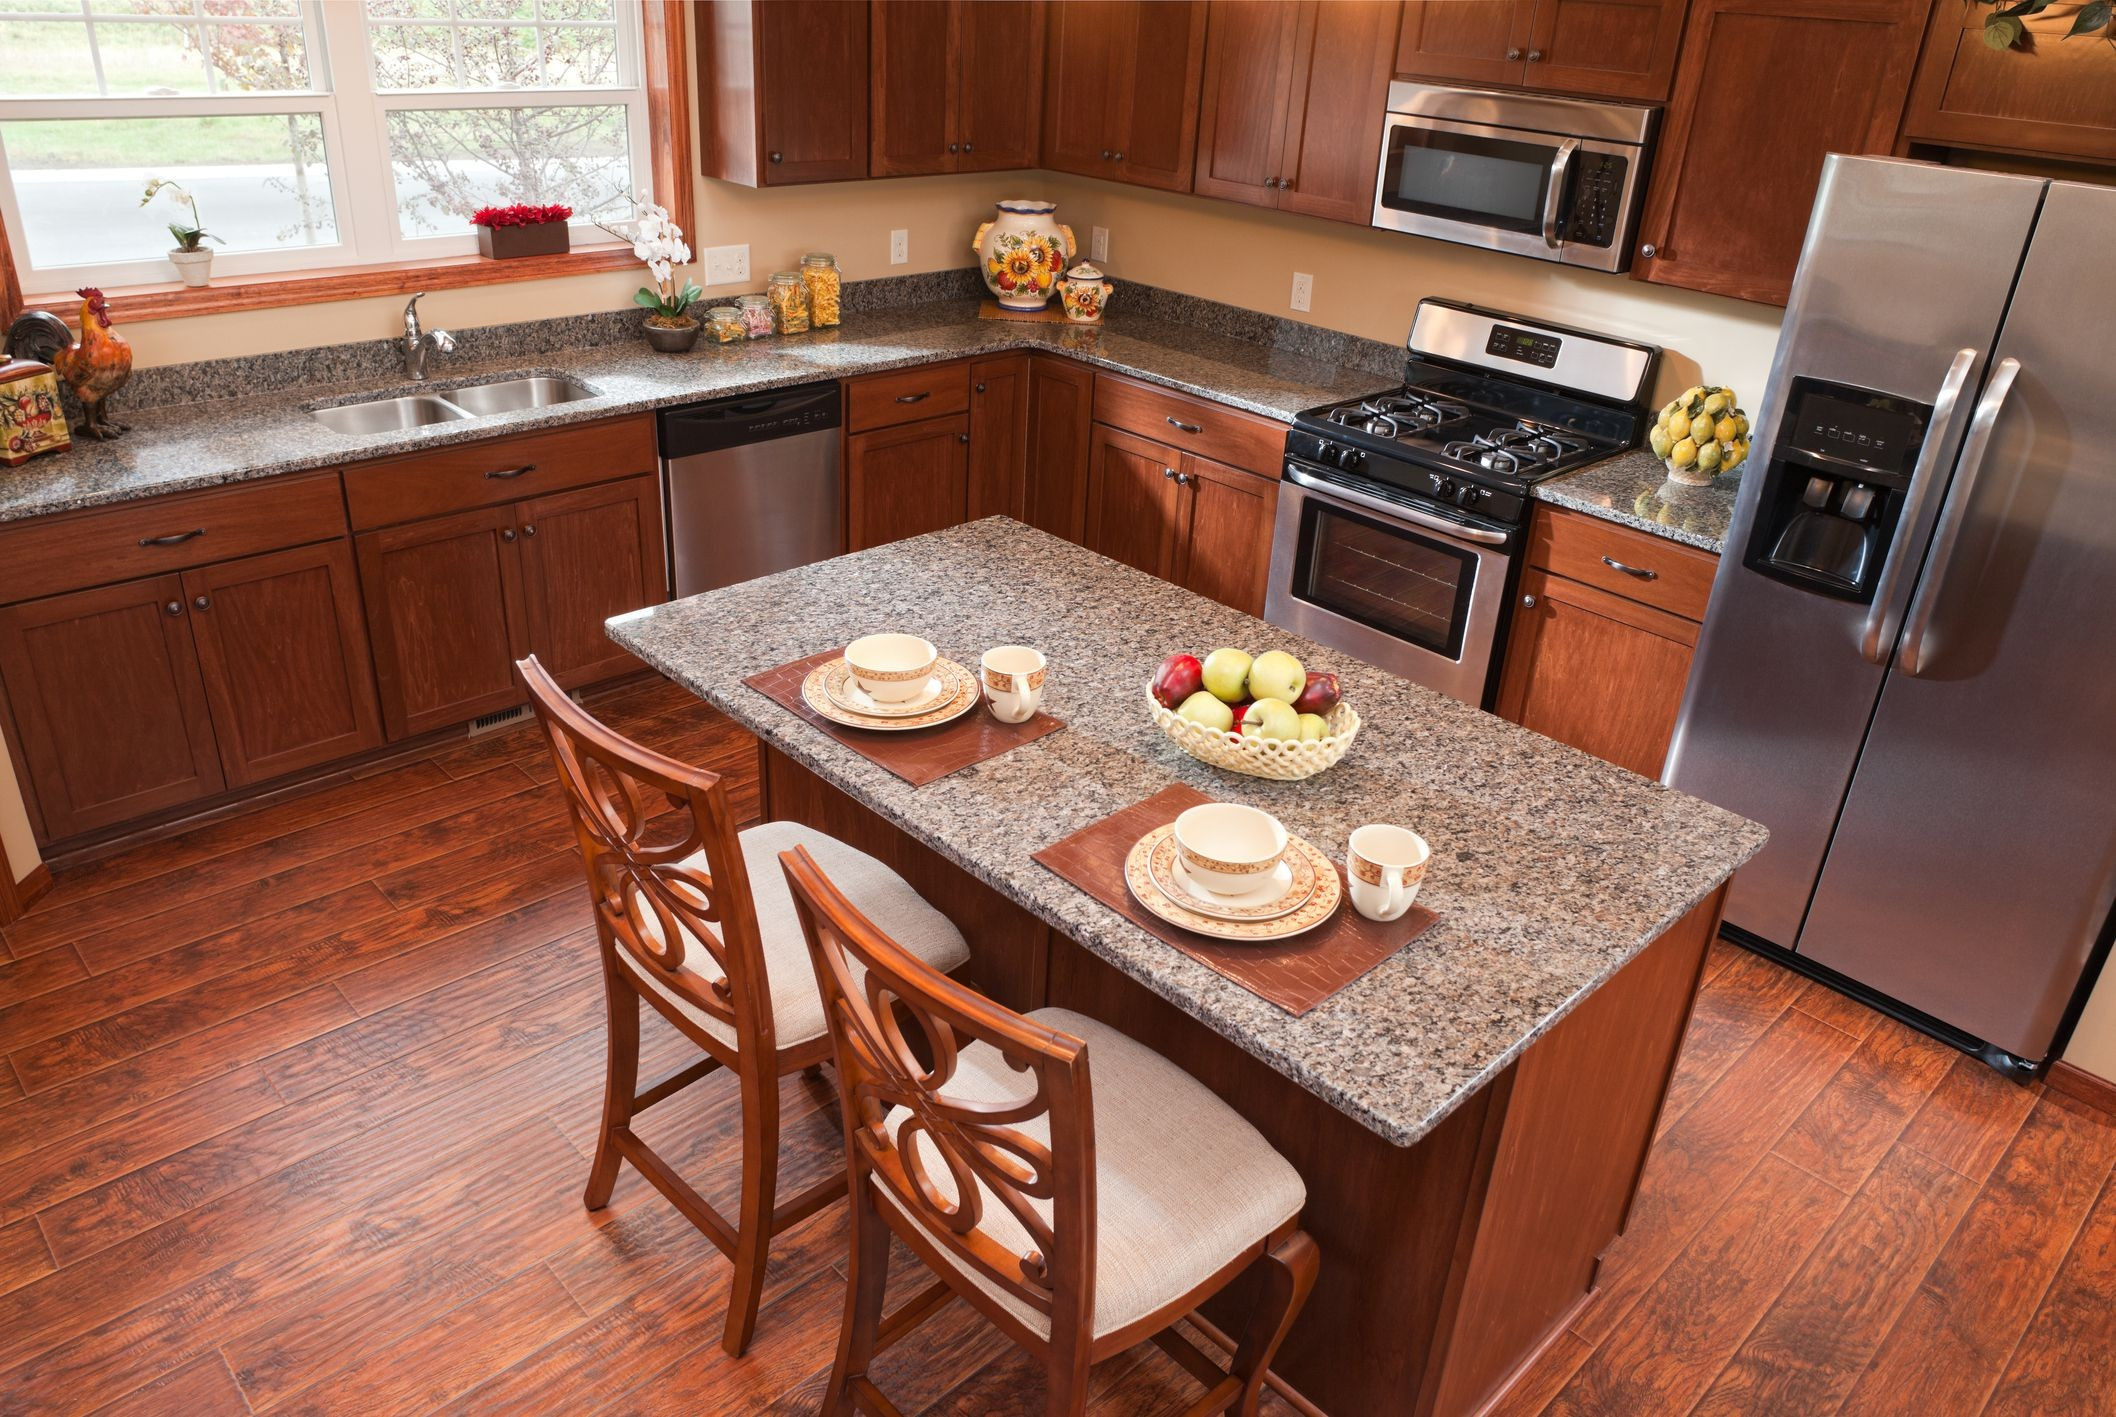 best hardwood floors for resale value of very best best kitchen flooring for resale kitchen layouts with island regarding best kitchen flooring for resale fascinating can you install laminate flooring in the kitchen